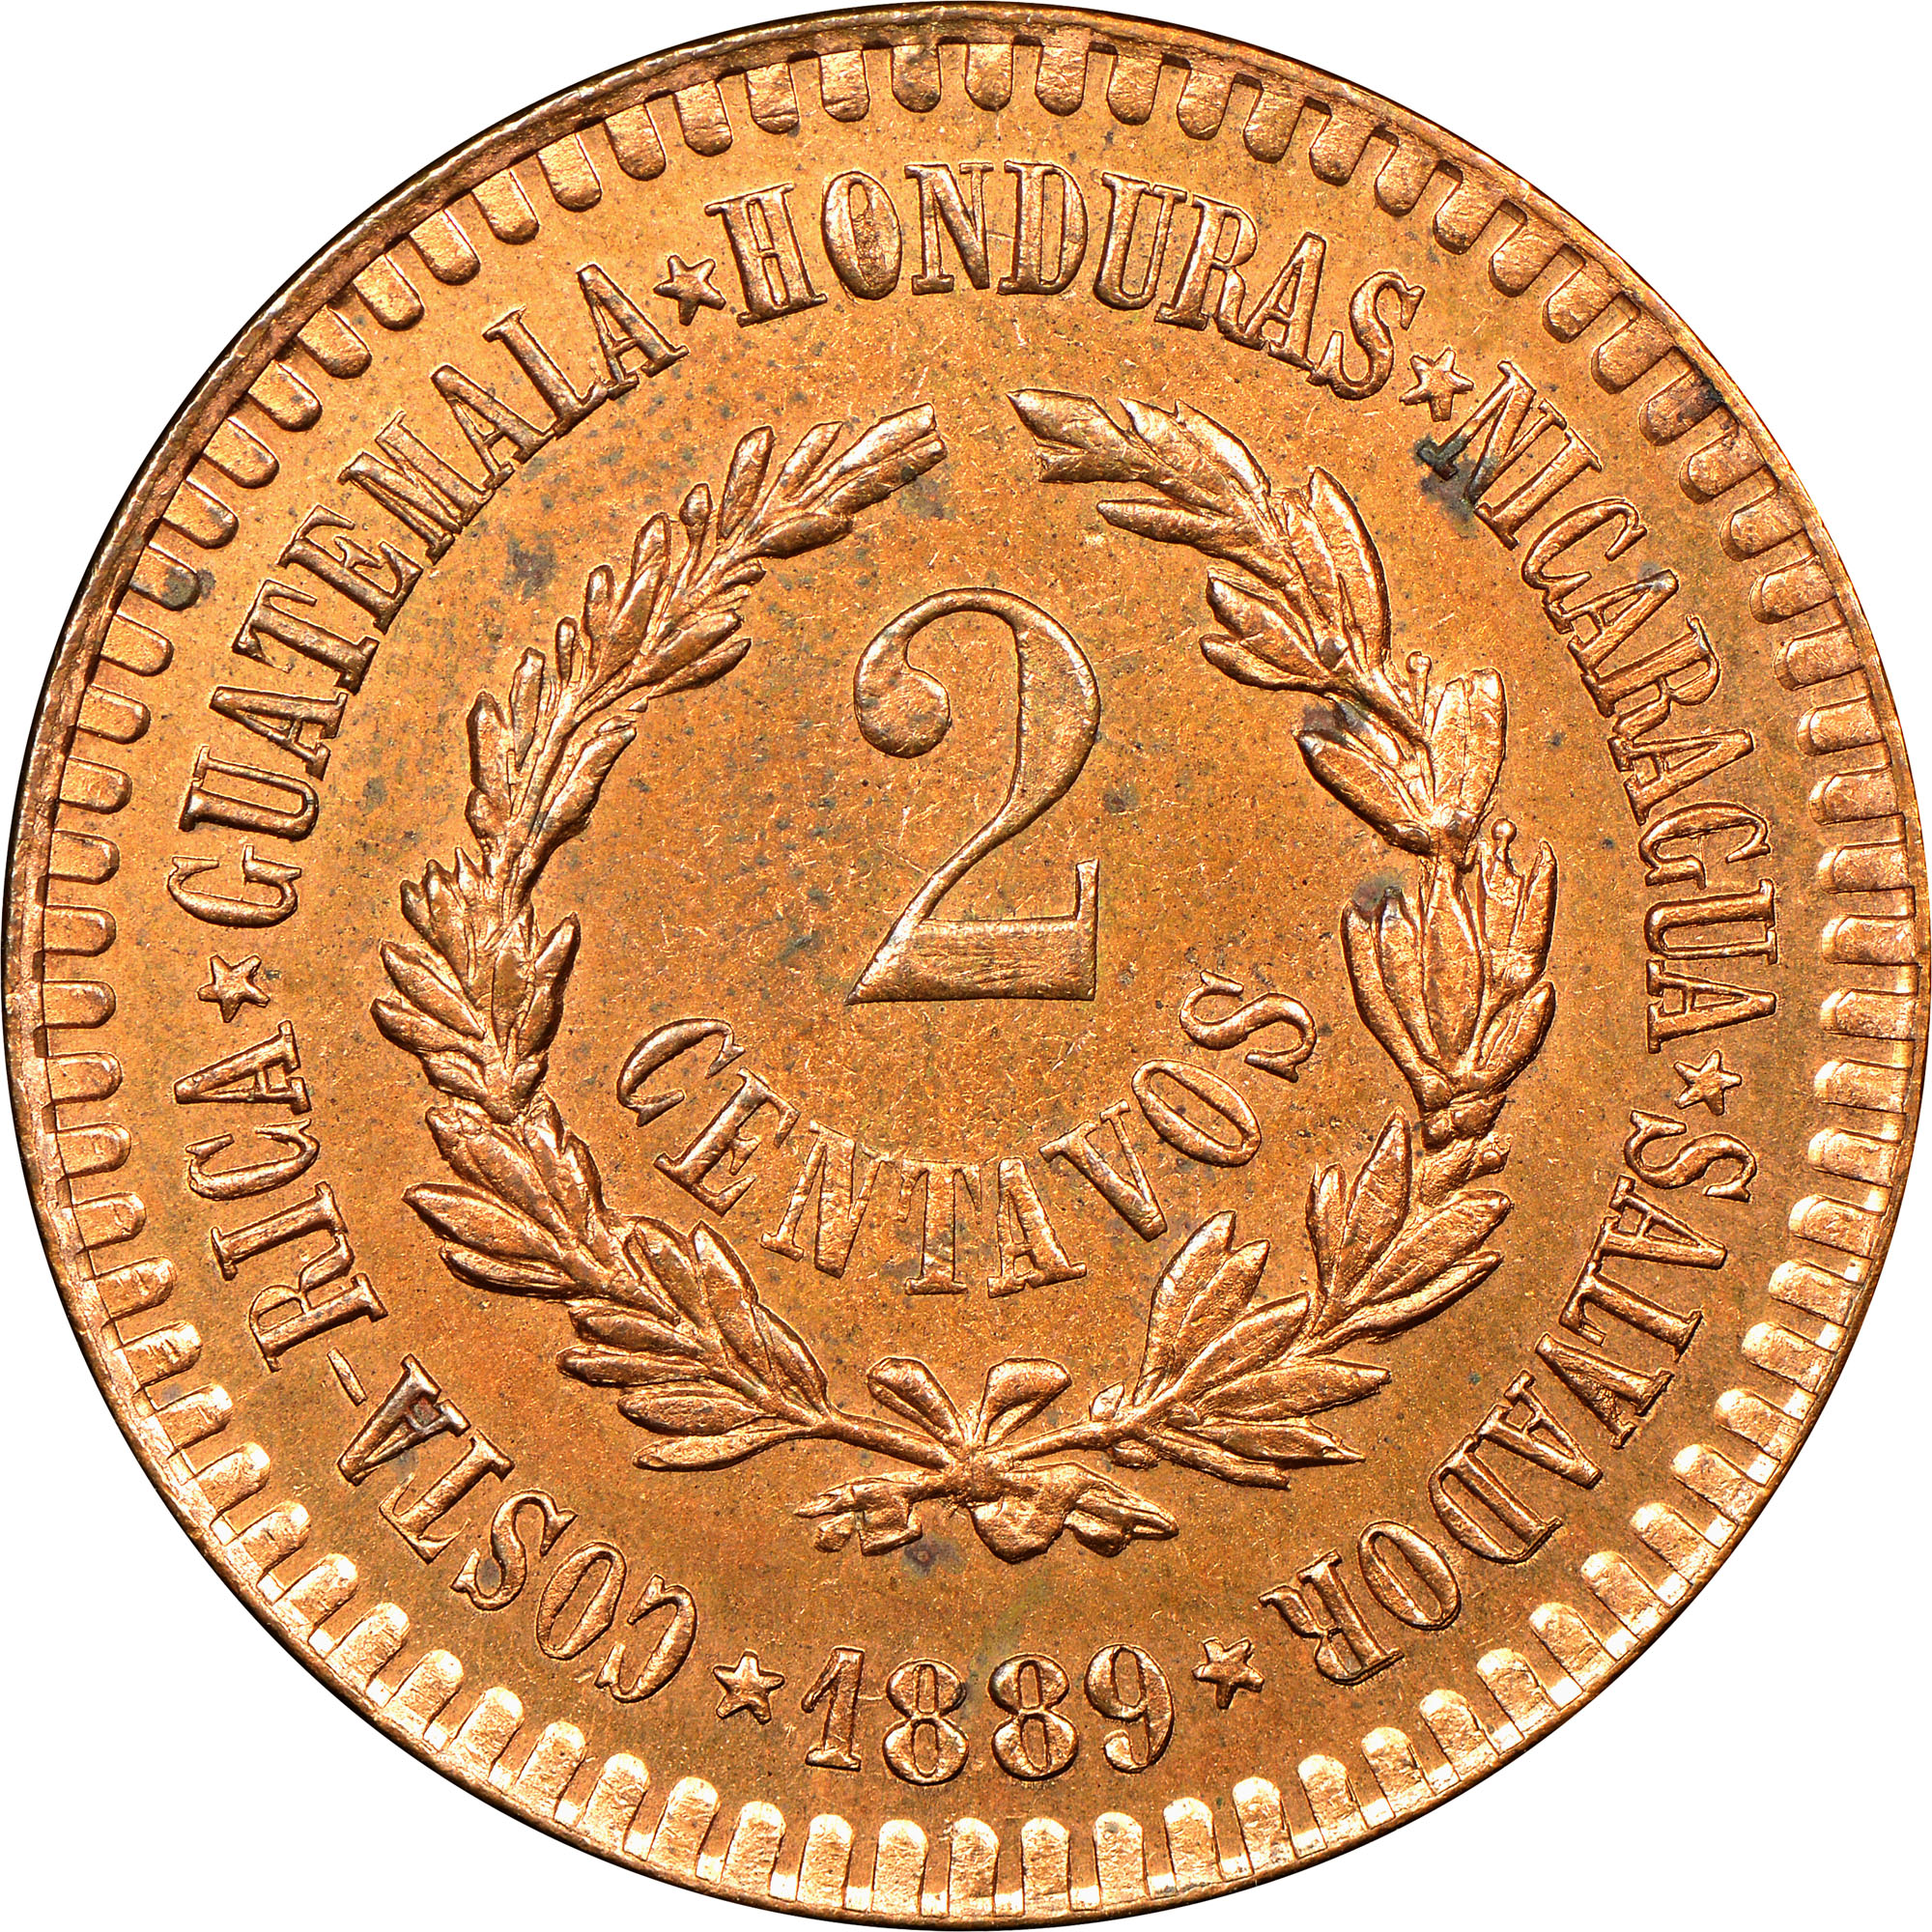 1889 Central American Union 2 Centavos reverse